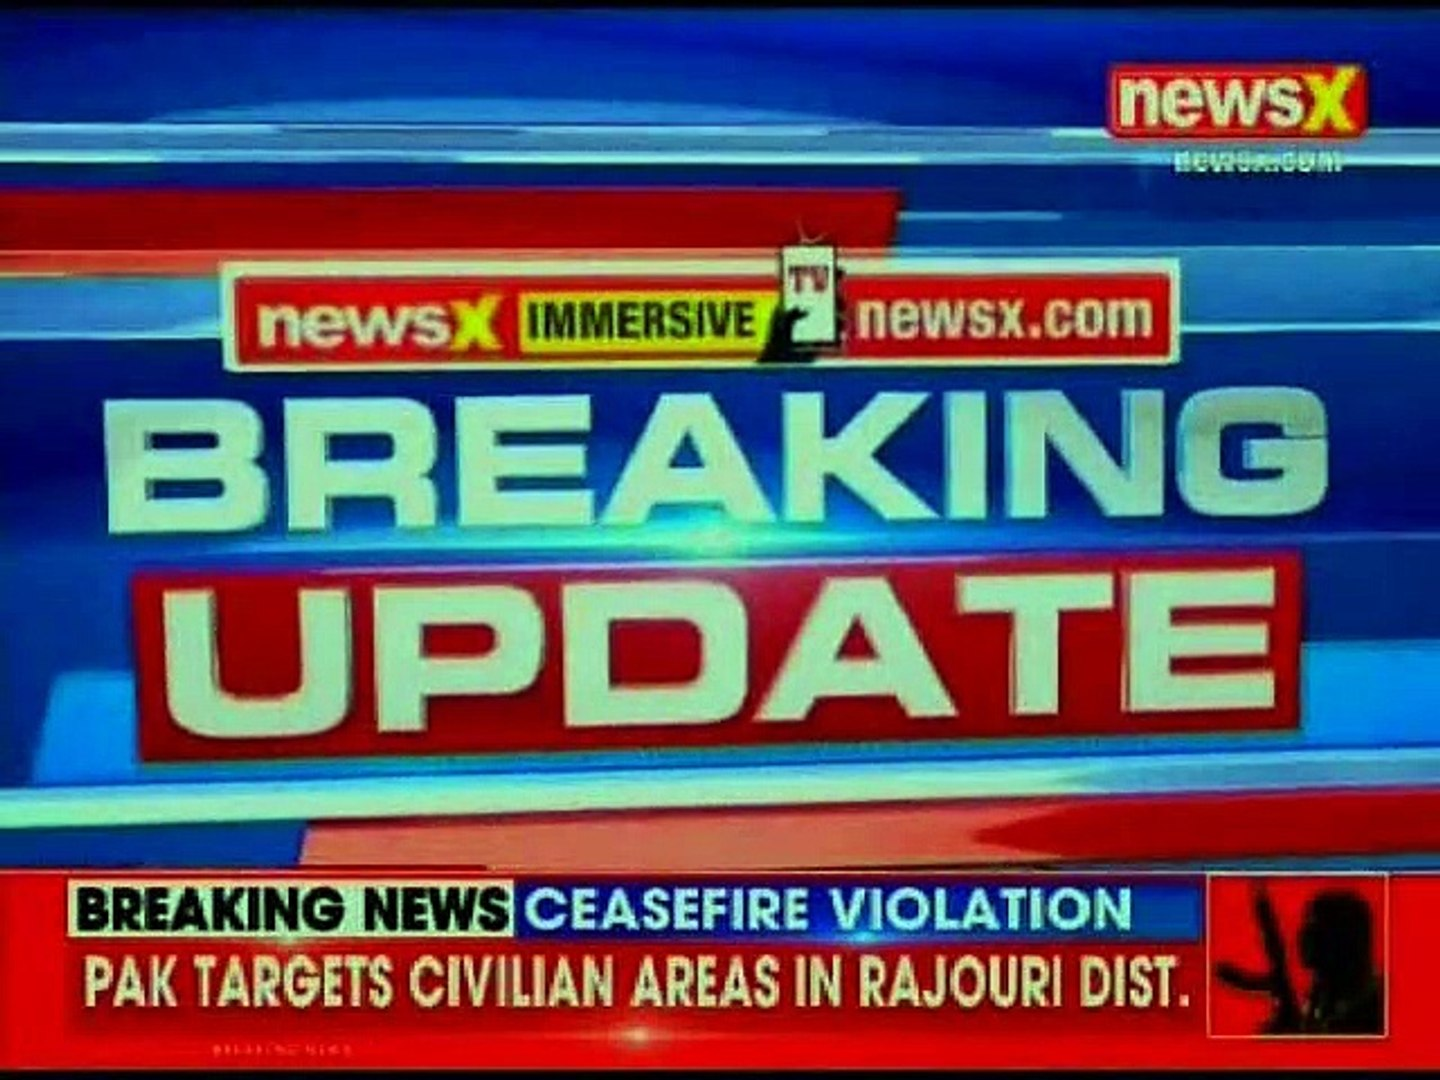 Pakistan violates ceasefire in Nowshera, Indian army retaliation effectively